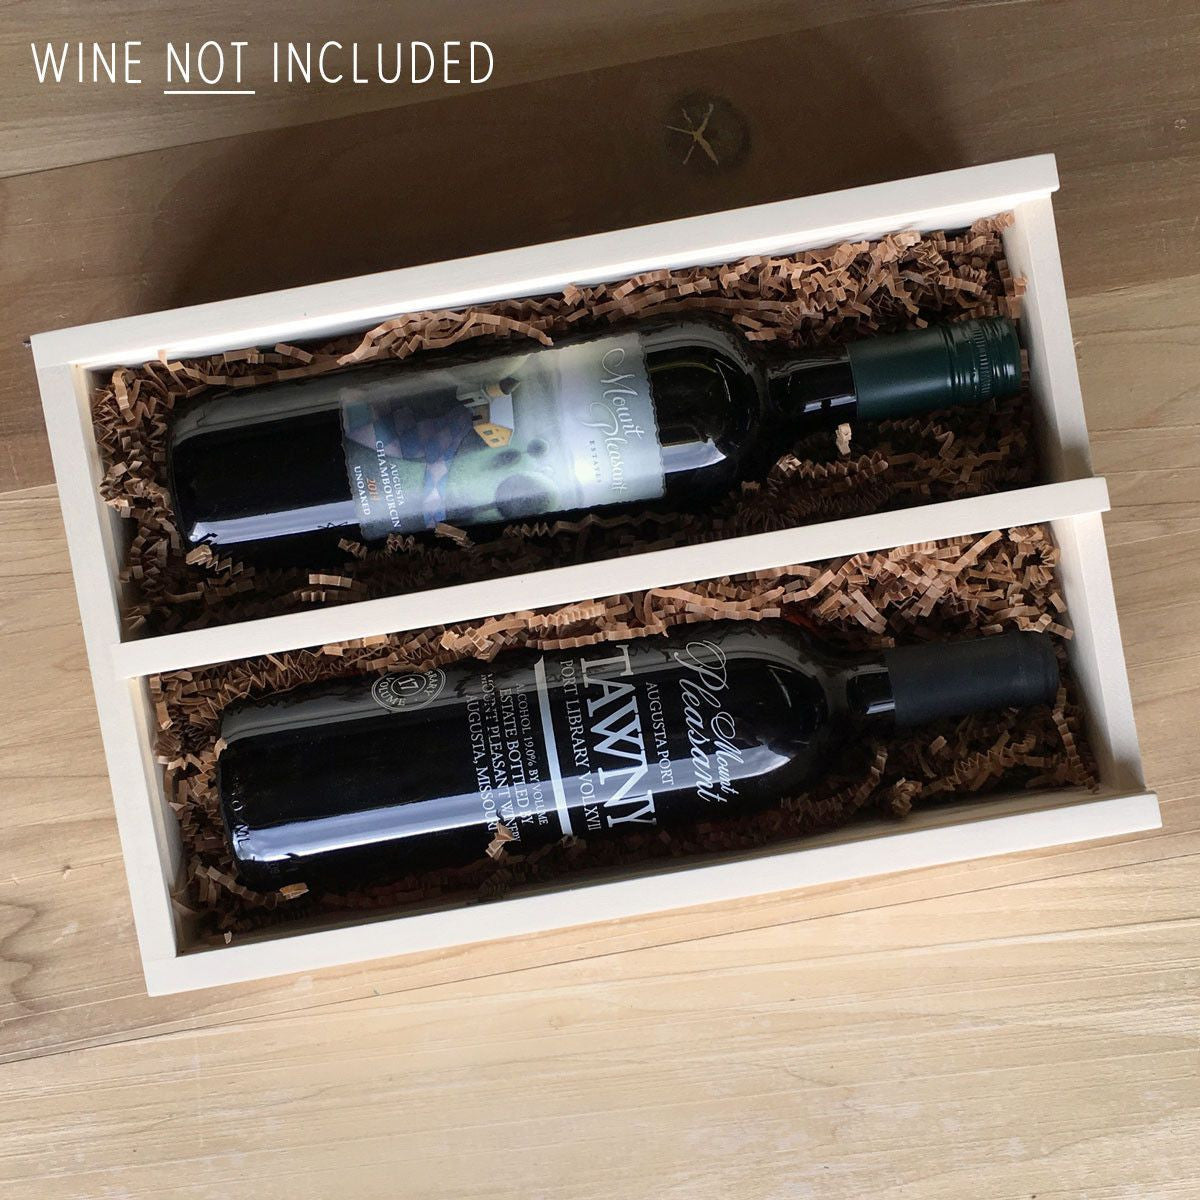 Naughty or Nice - Christmas Wine Box